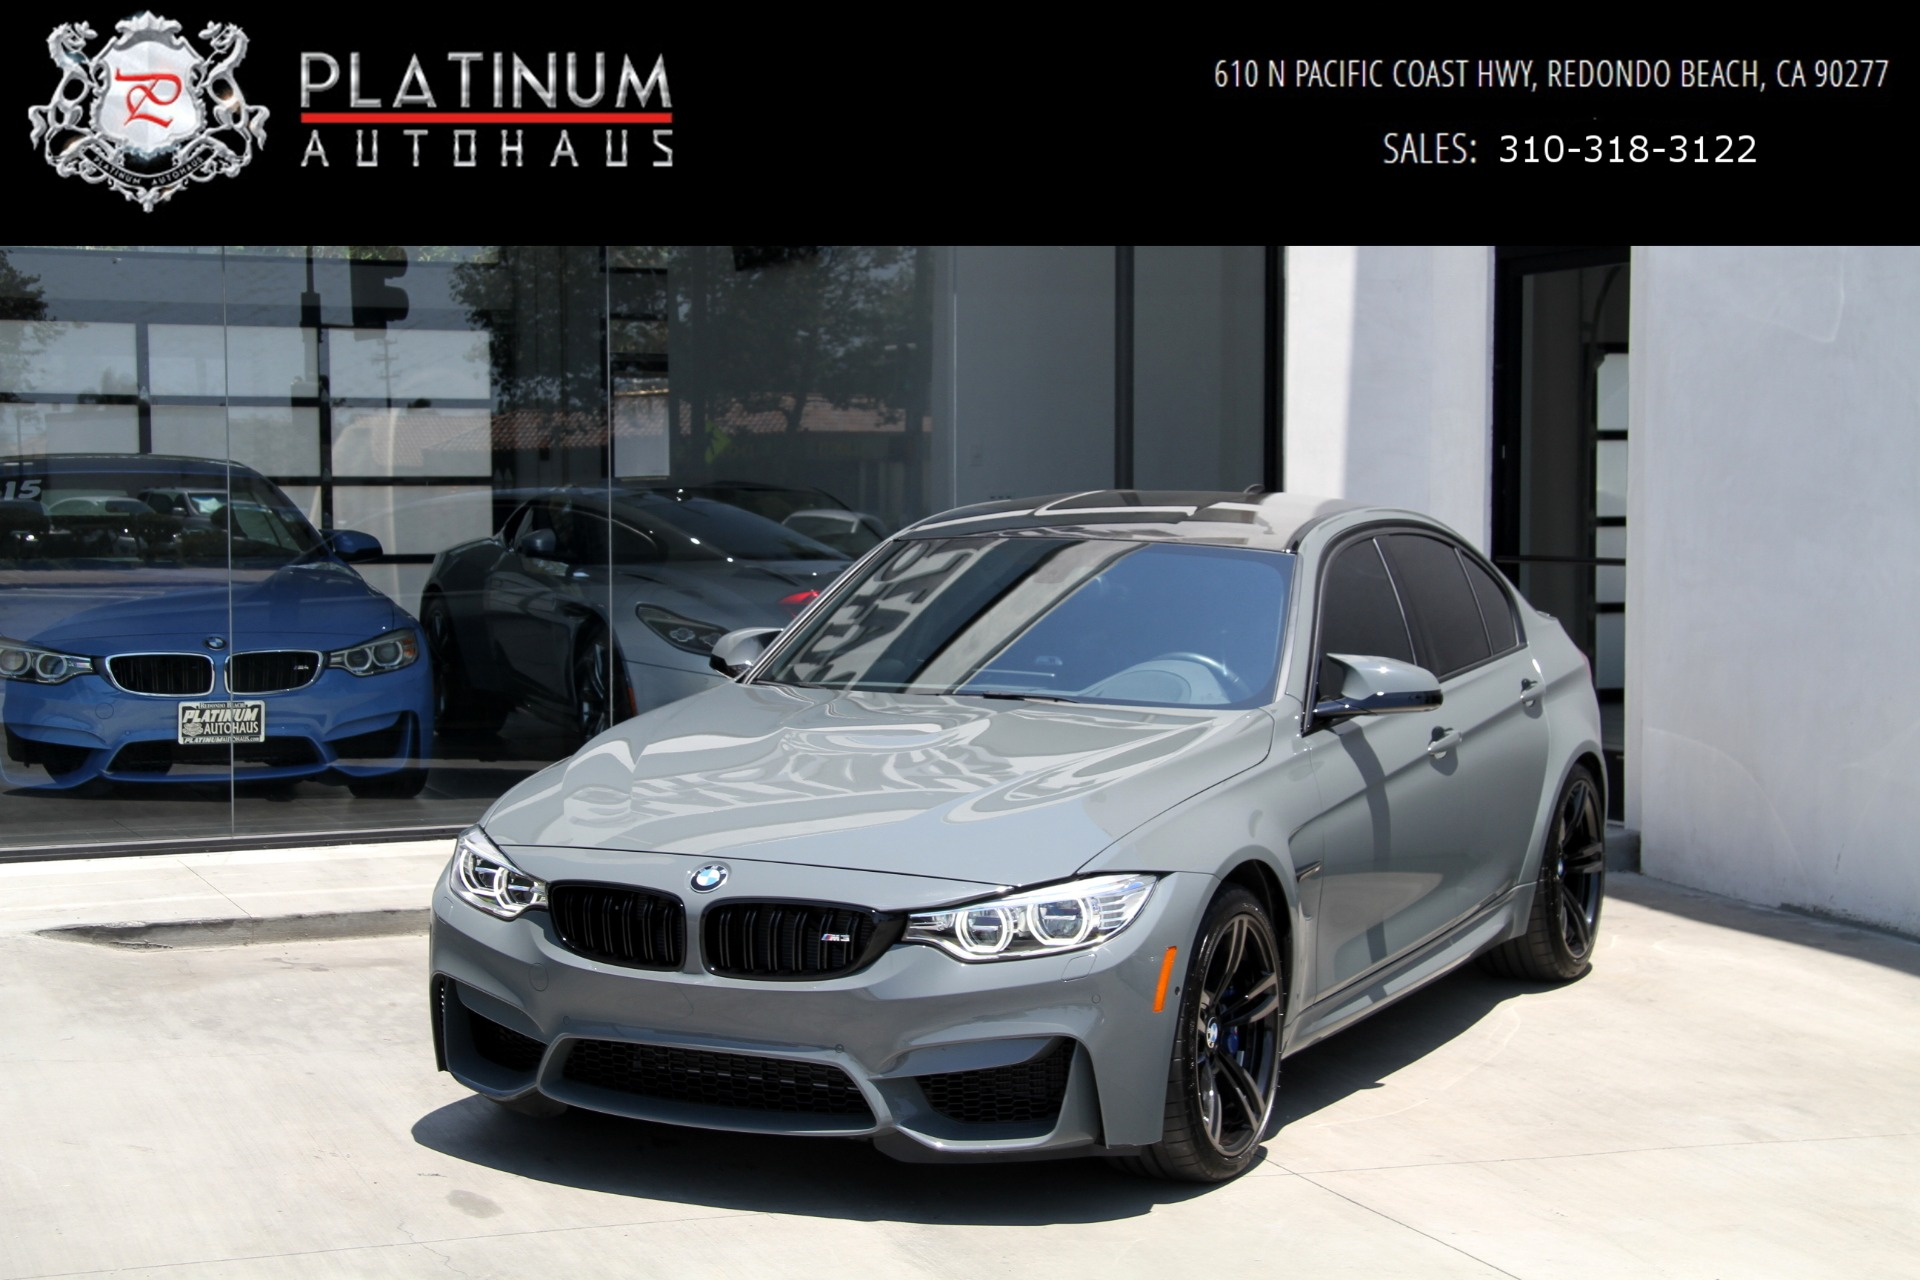 2017 bmw m3 competition package stock 6230 for sale near redondo beach ca ca bmw dealer. Black Bedroom Furniture Sets. Home Design Ideas